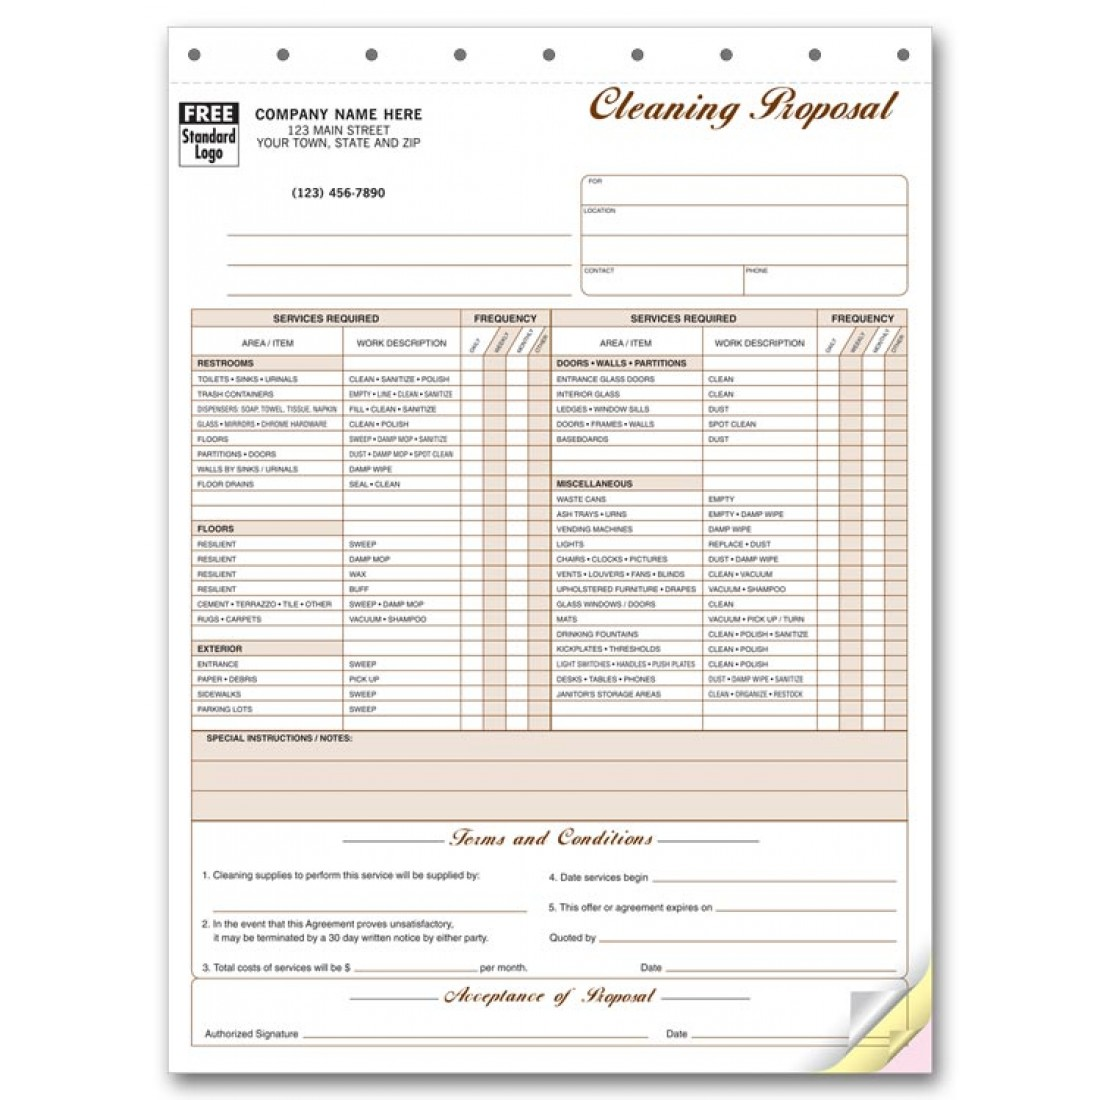 Cleaning Proposal Forms Free Shipping - Cleaning service invoice template free online beer store